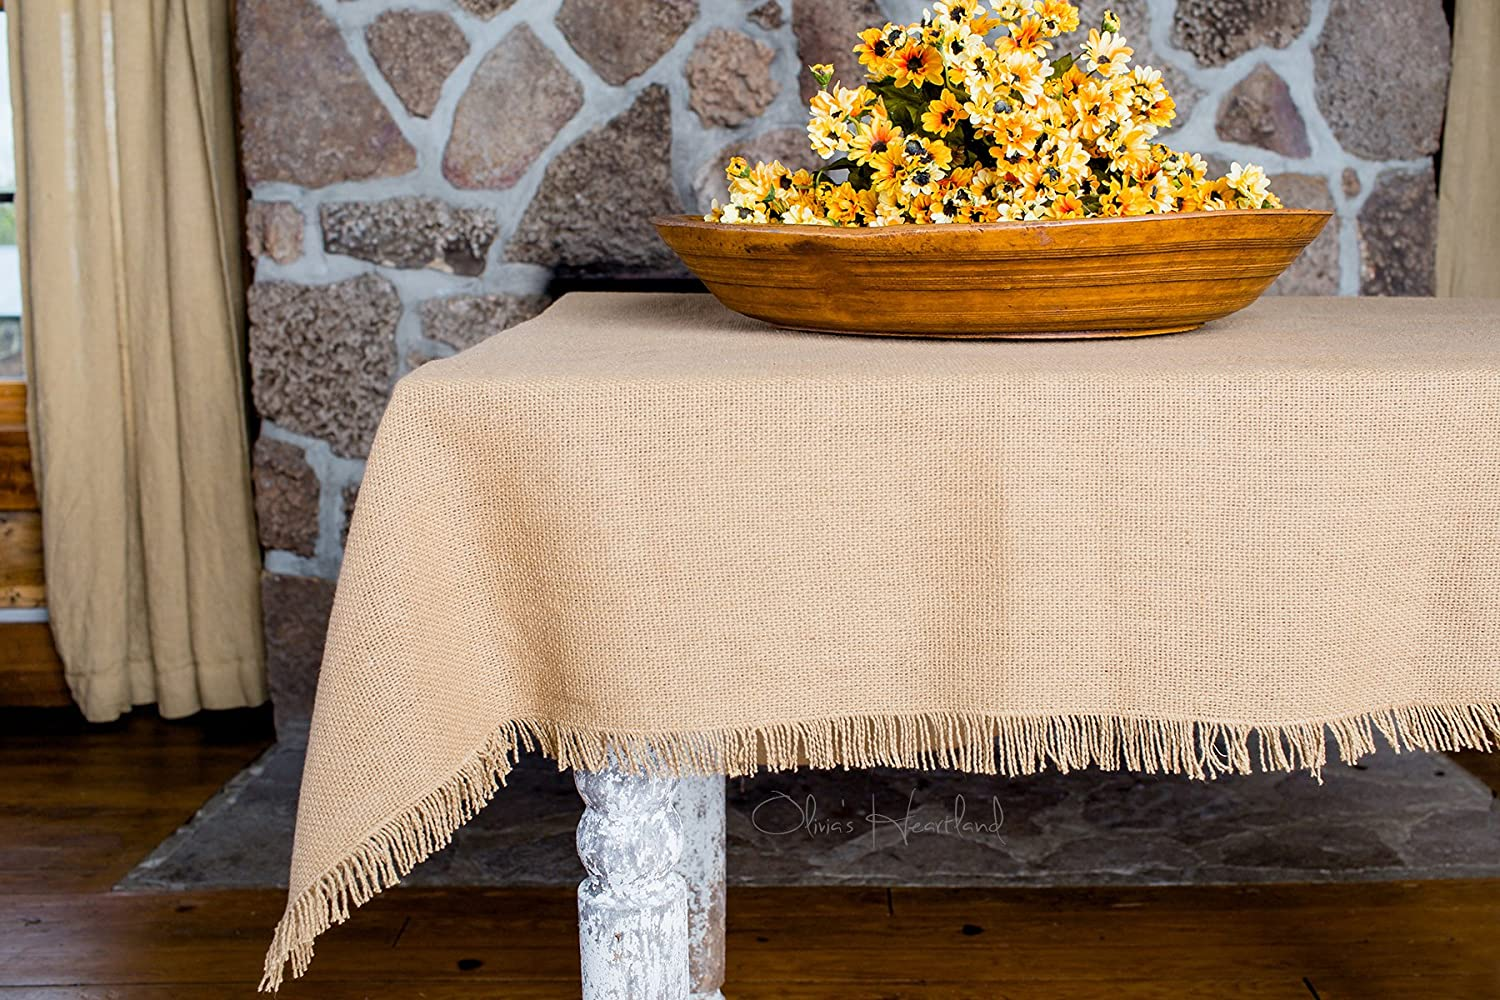 Christmas Tablescape Décor - Natural tan handmade fringed machine washable 100% cotton burlap tablecloth